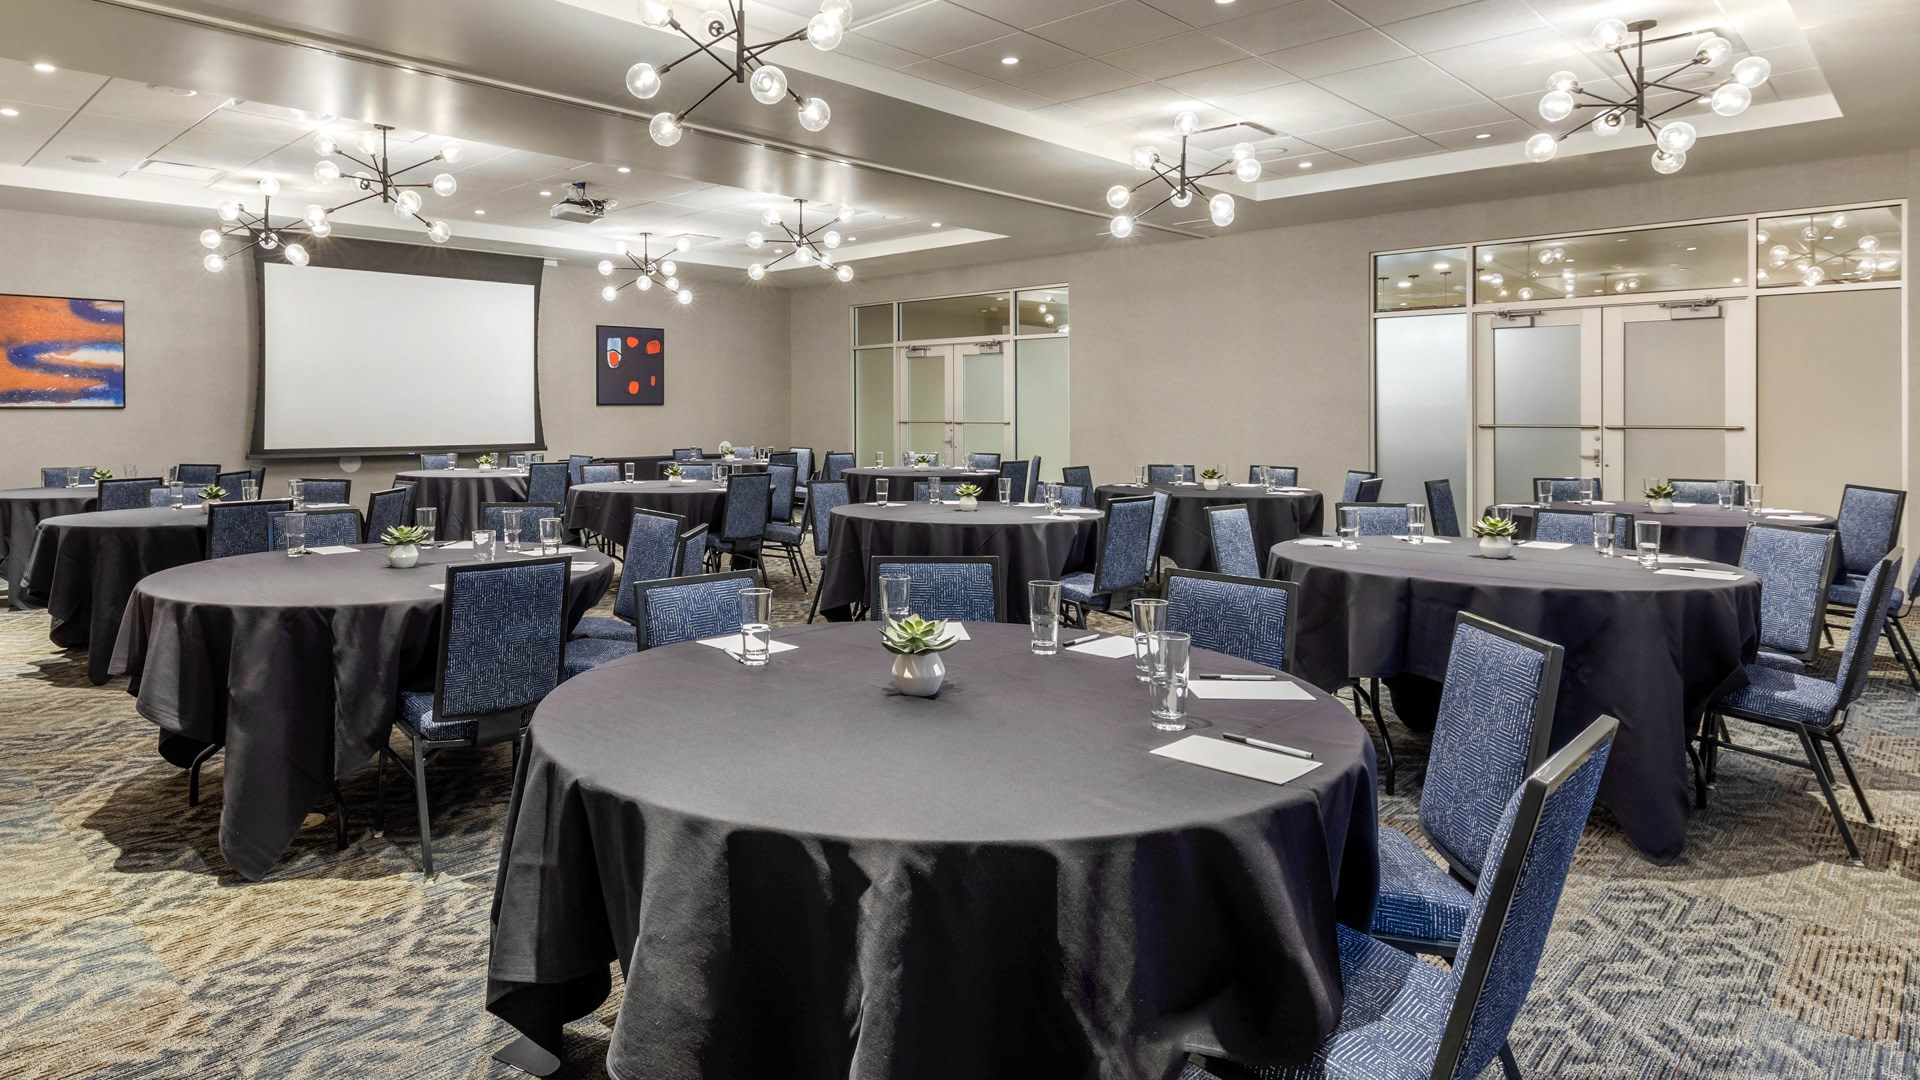 Meeting and Event space of 1,800 sq ft